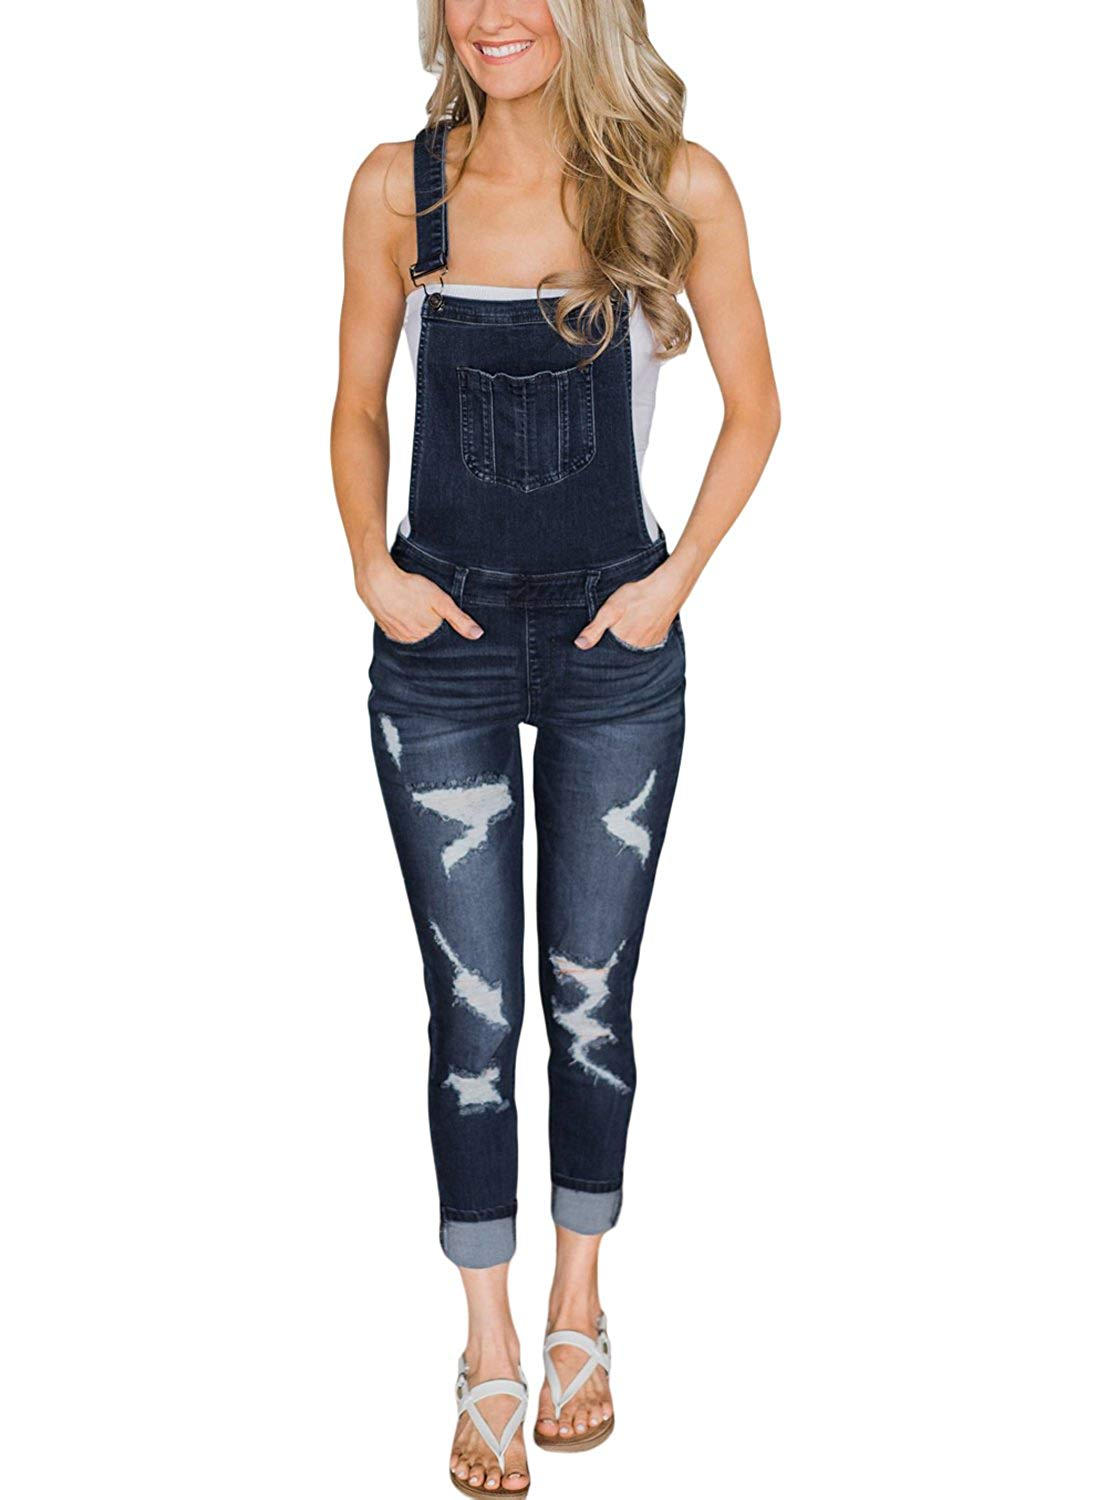 47649d2087 Get Quotations · GOSOPIN Women Juniors Fitted Distressed Denim Jeans  Stretch Overalls Jumpsuits